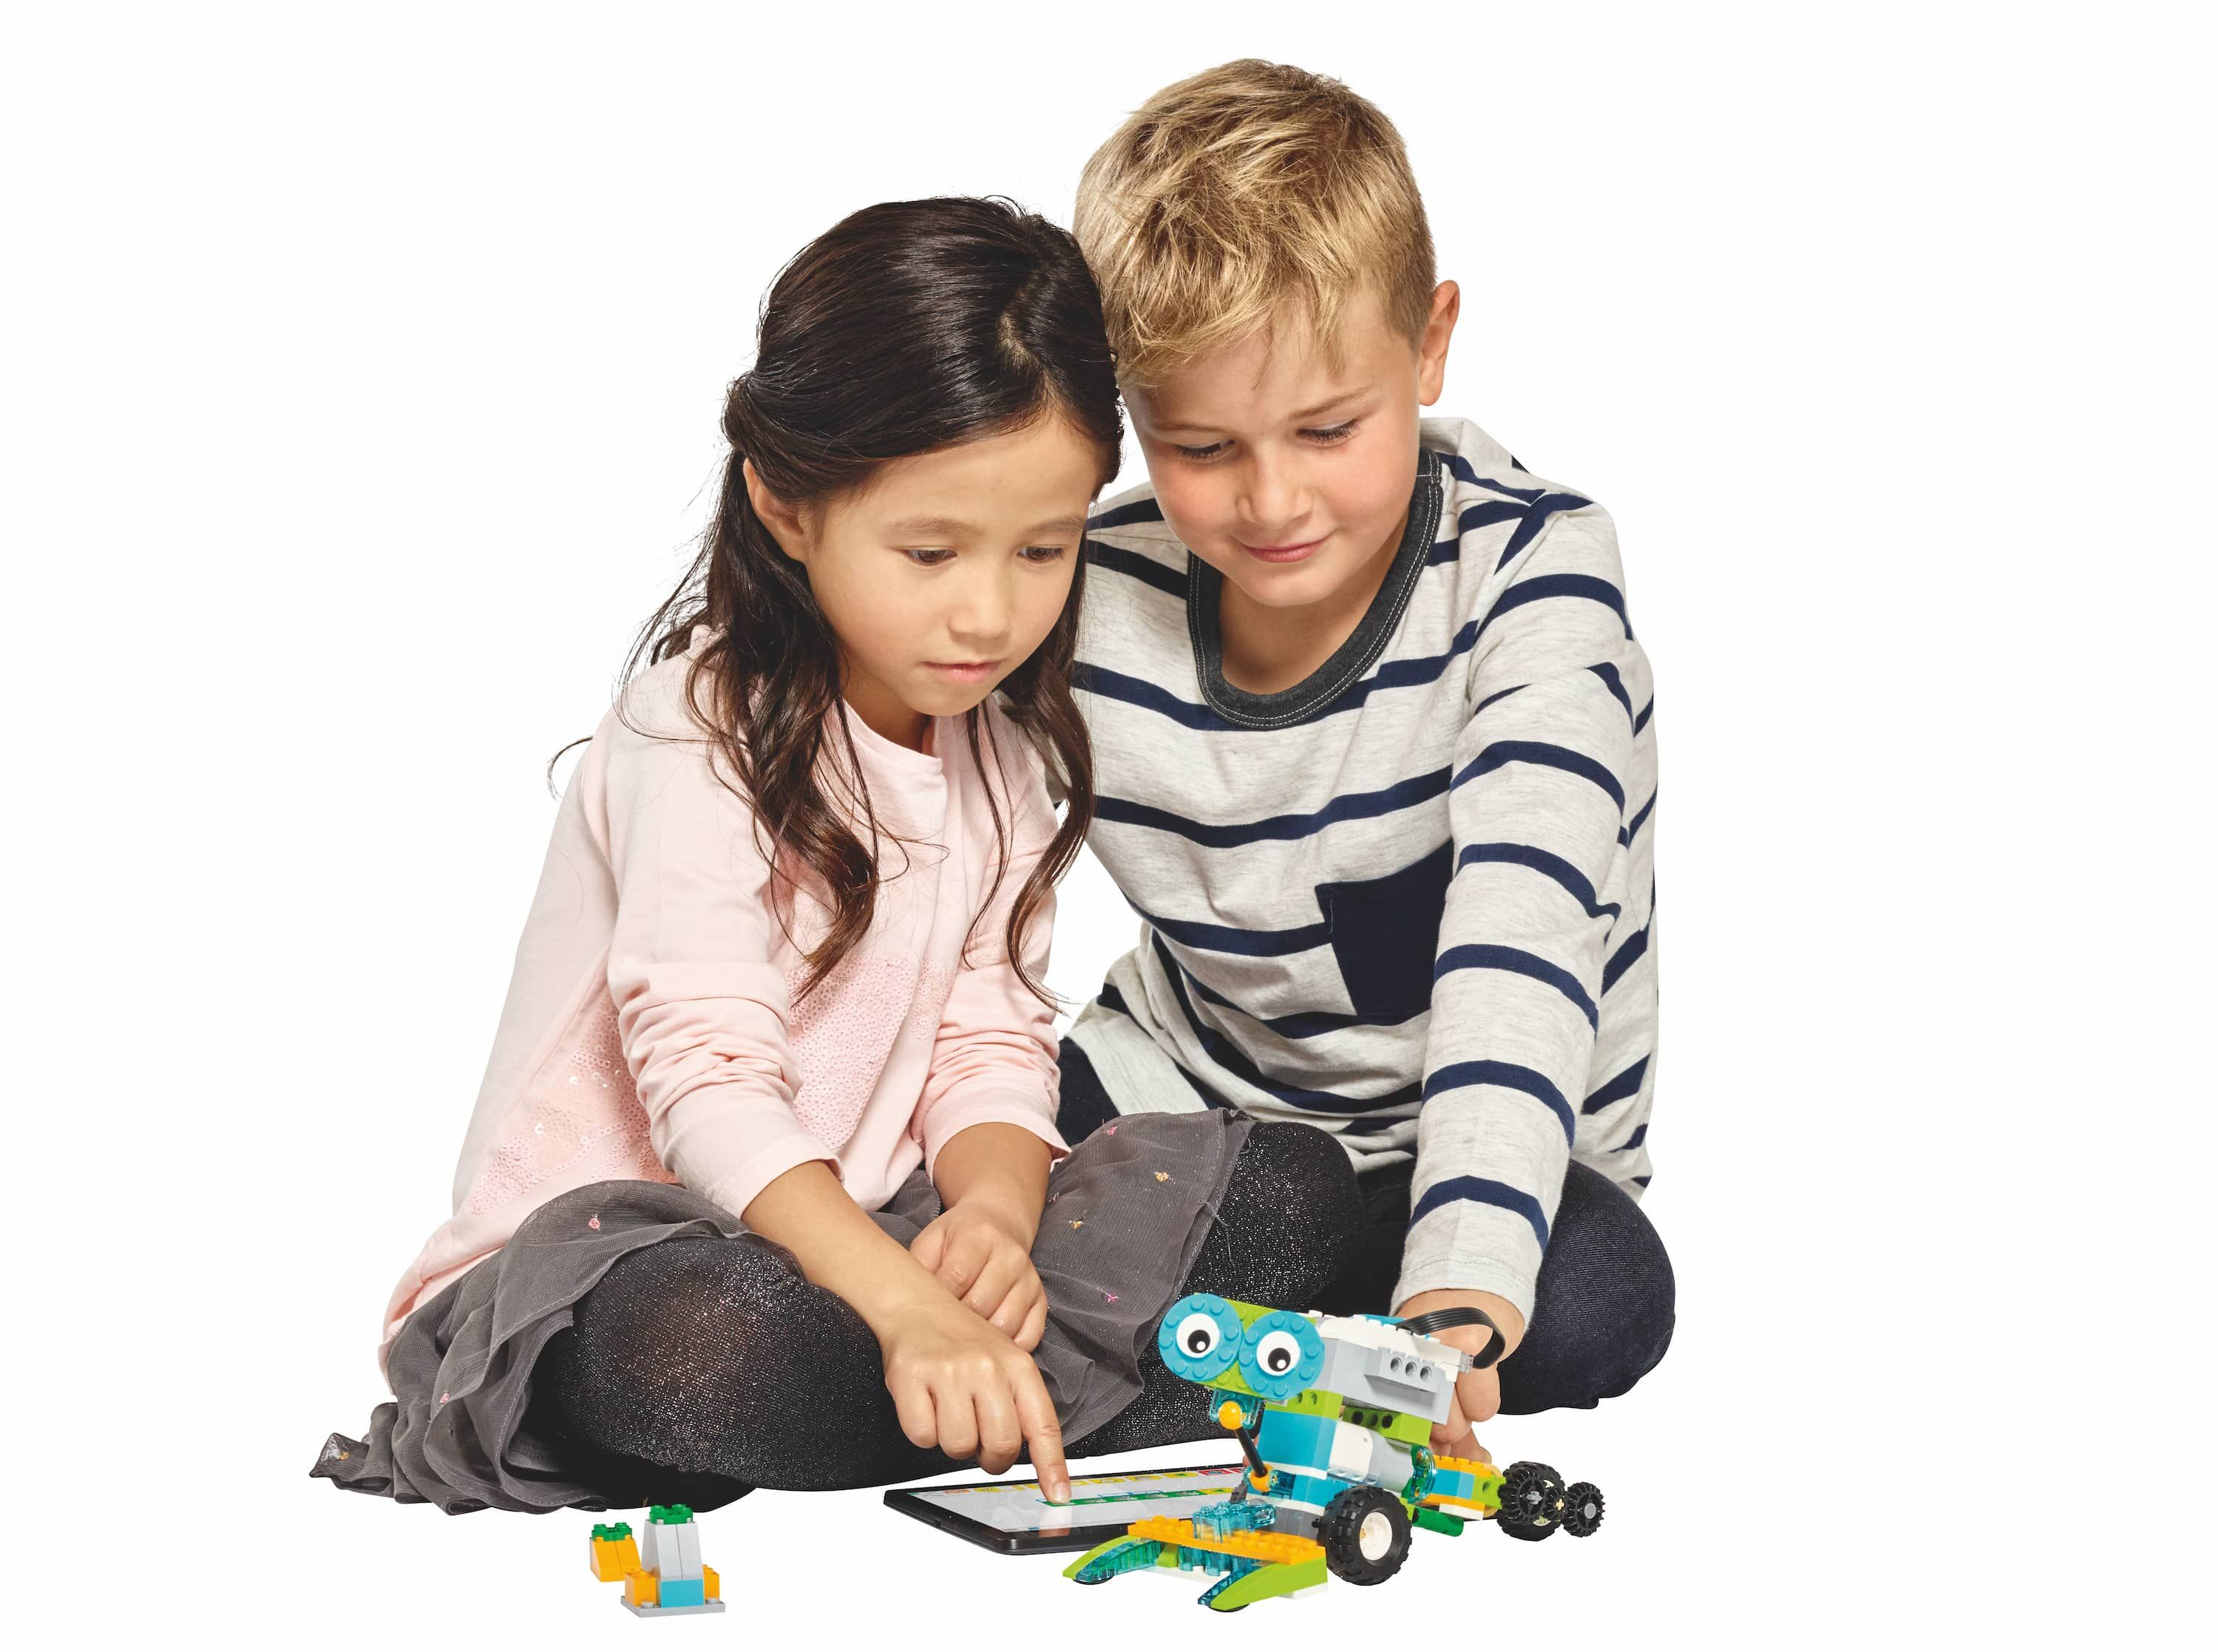 WeDo 2.0 for education